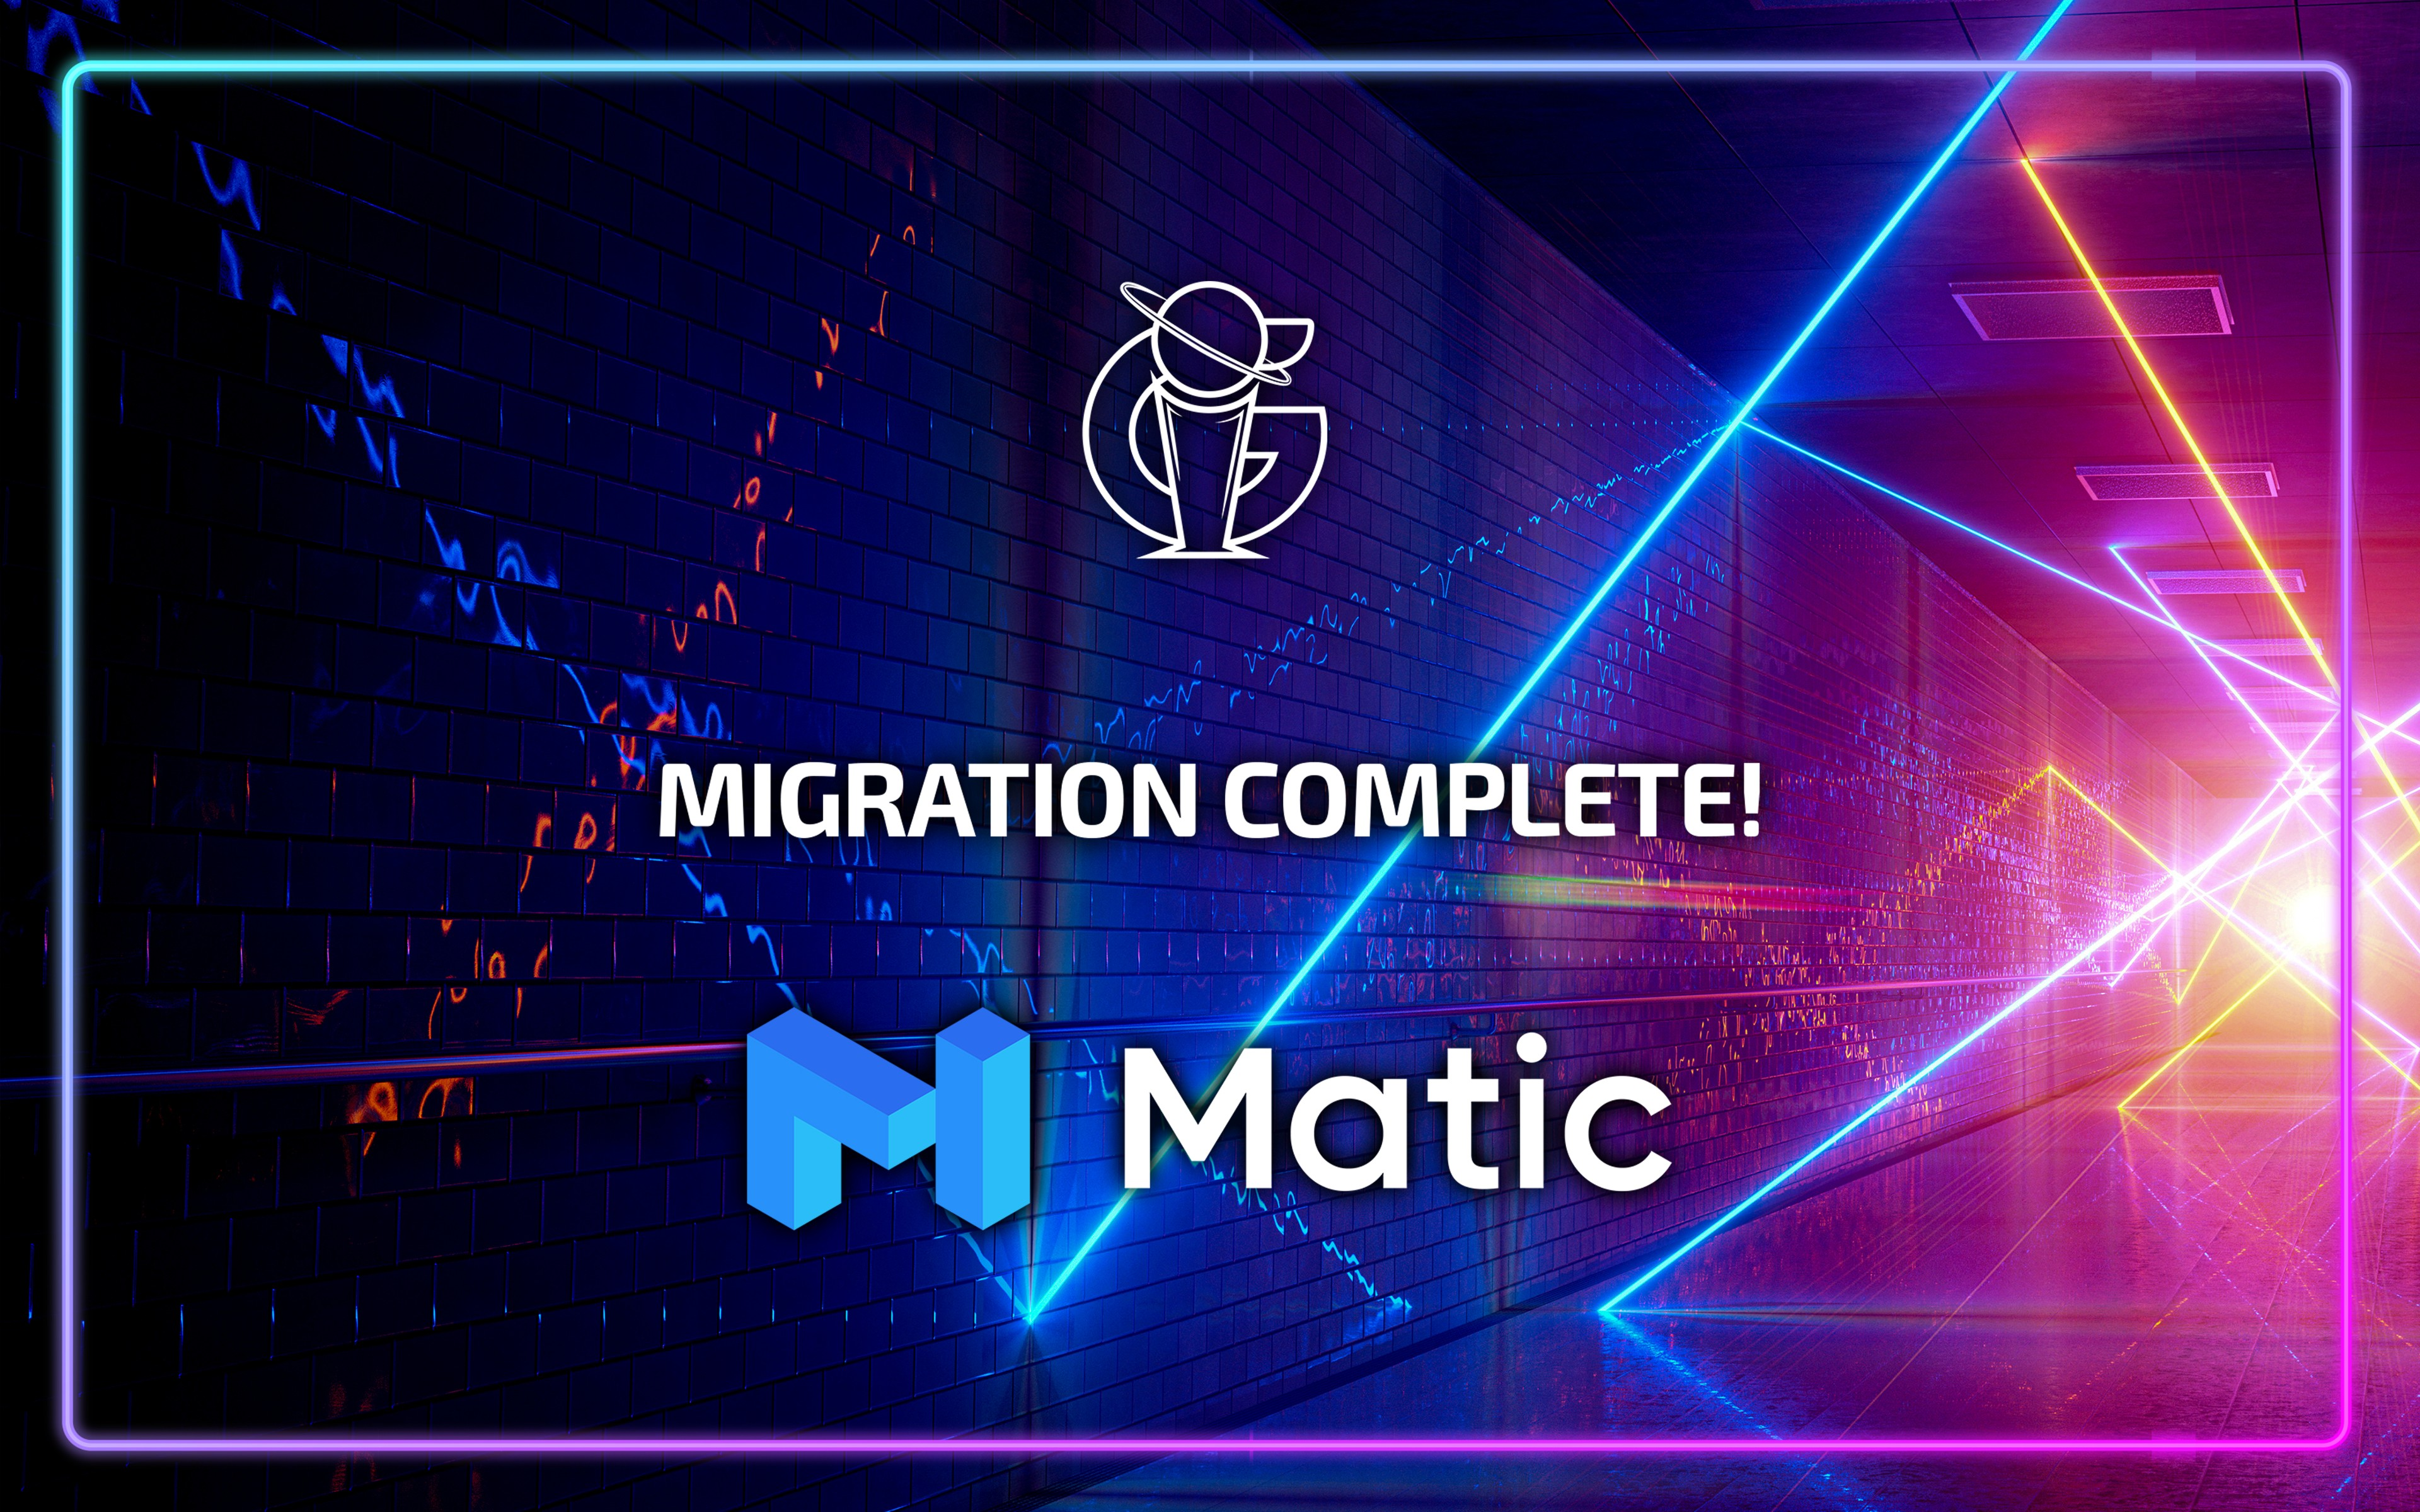 IGGalaxy migration from TRON to Matic Network complete!